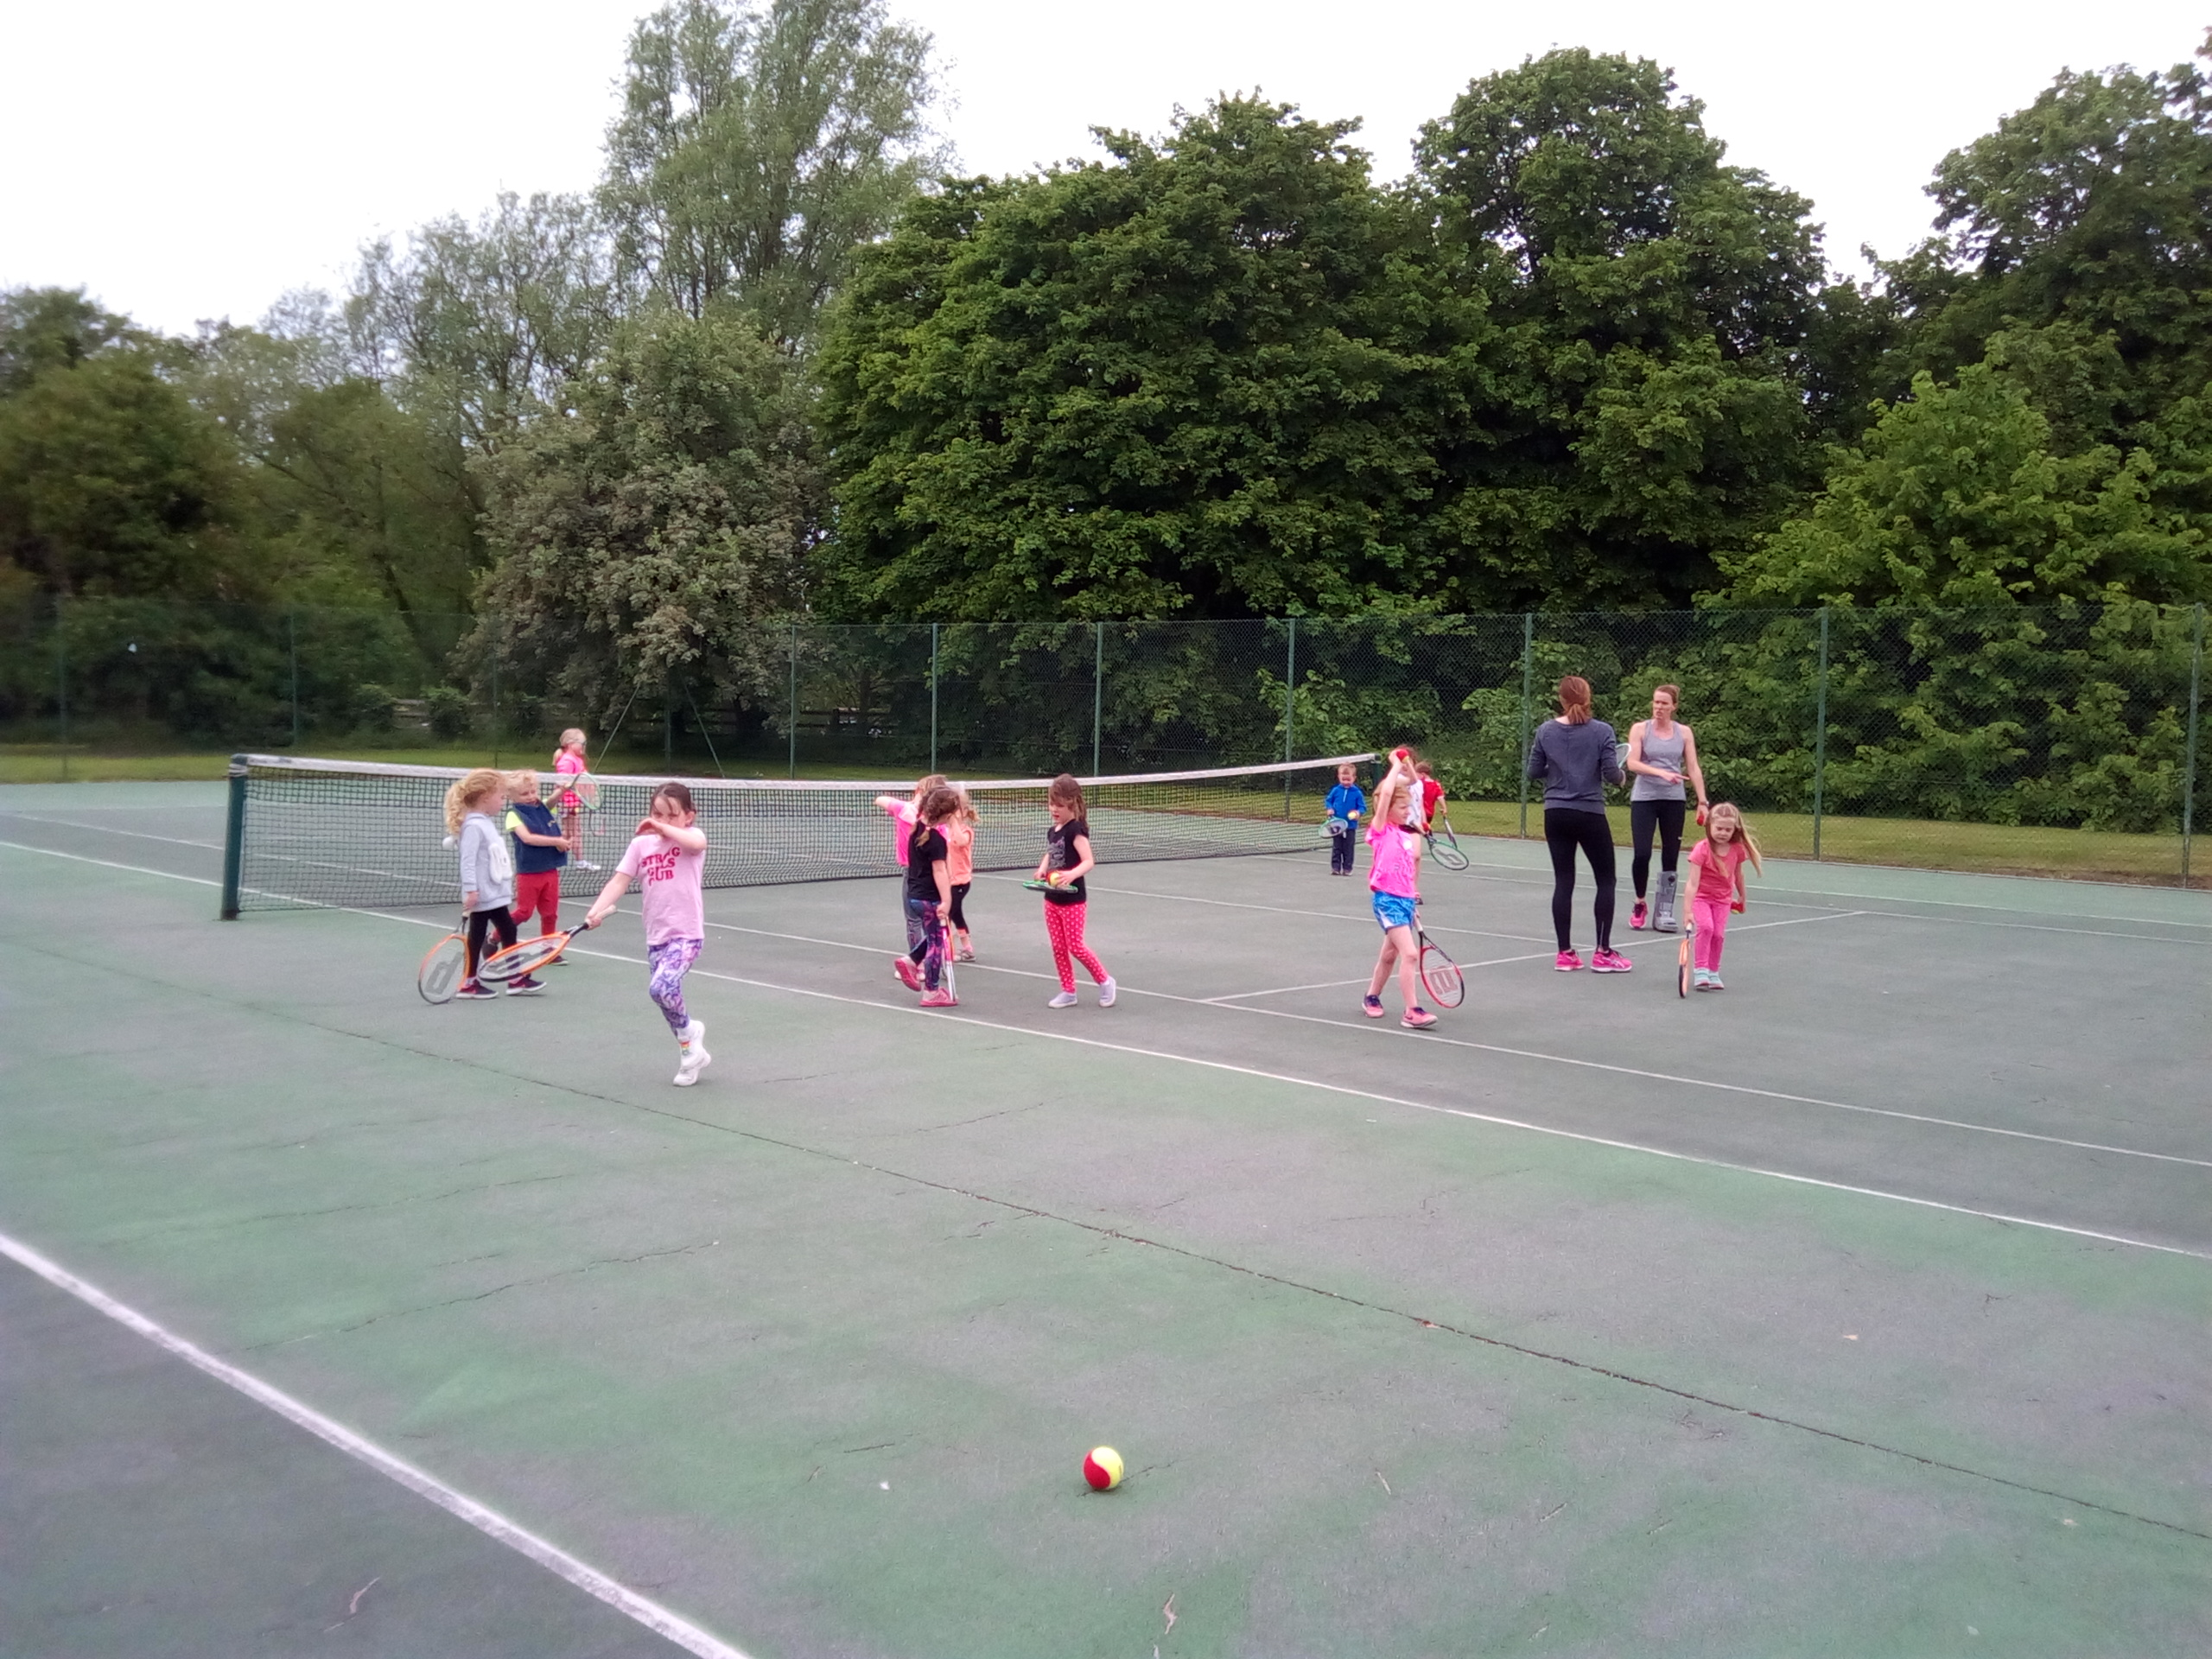 fit-kidz-great-ayton-tennis-club-may-2019-2